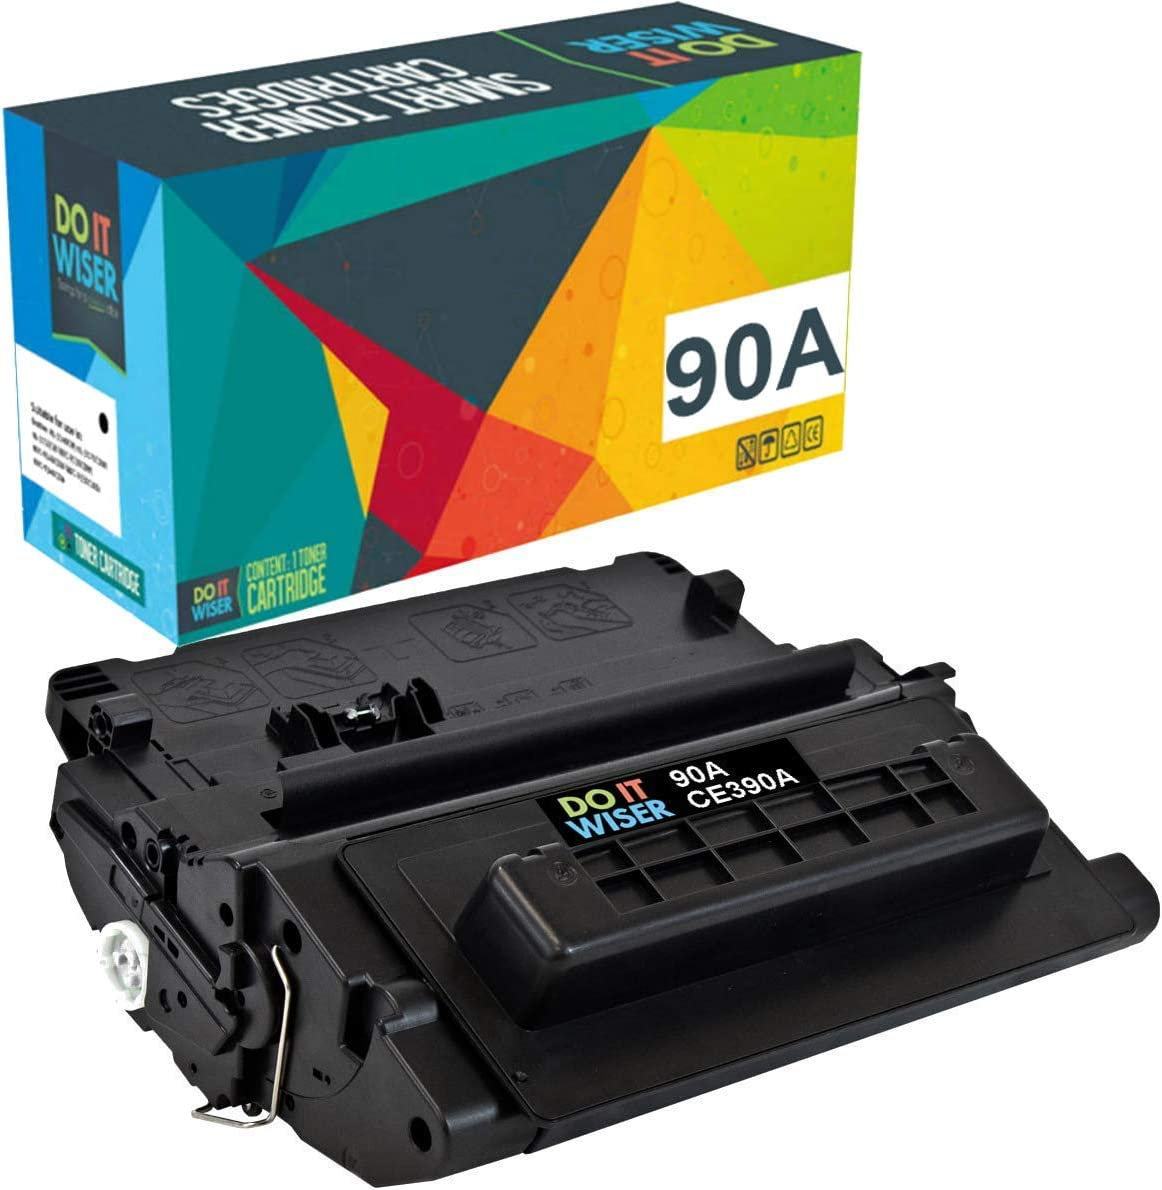 Do it Wiser Compatible Toner Cartridge Replacement for HP 90A CE390A HP Laserjet M602 M603 M4555 M601 M601n M602n M603n (Black)